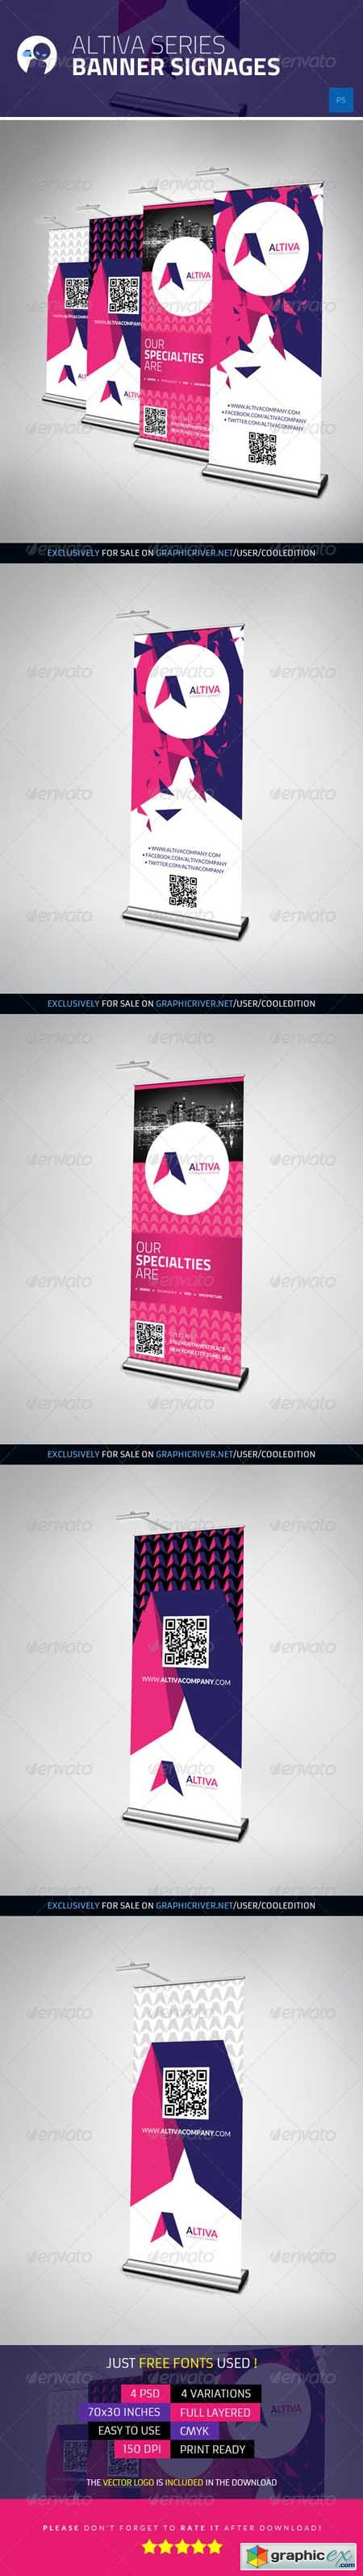 Altiva Series - Banner Signages